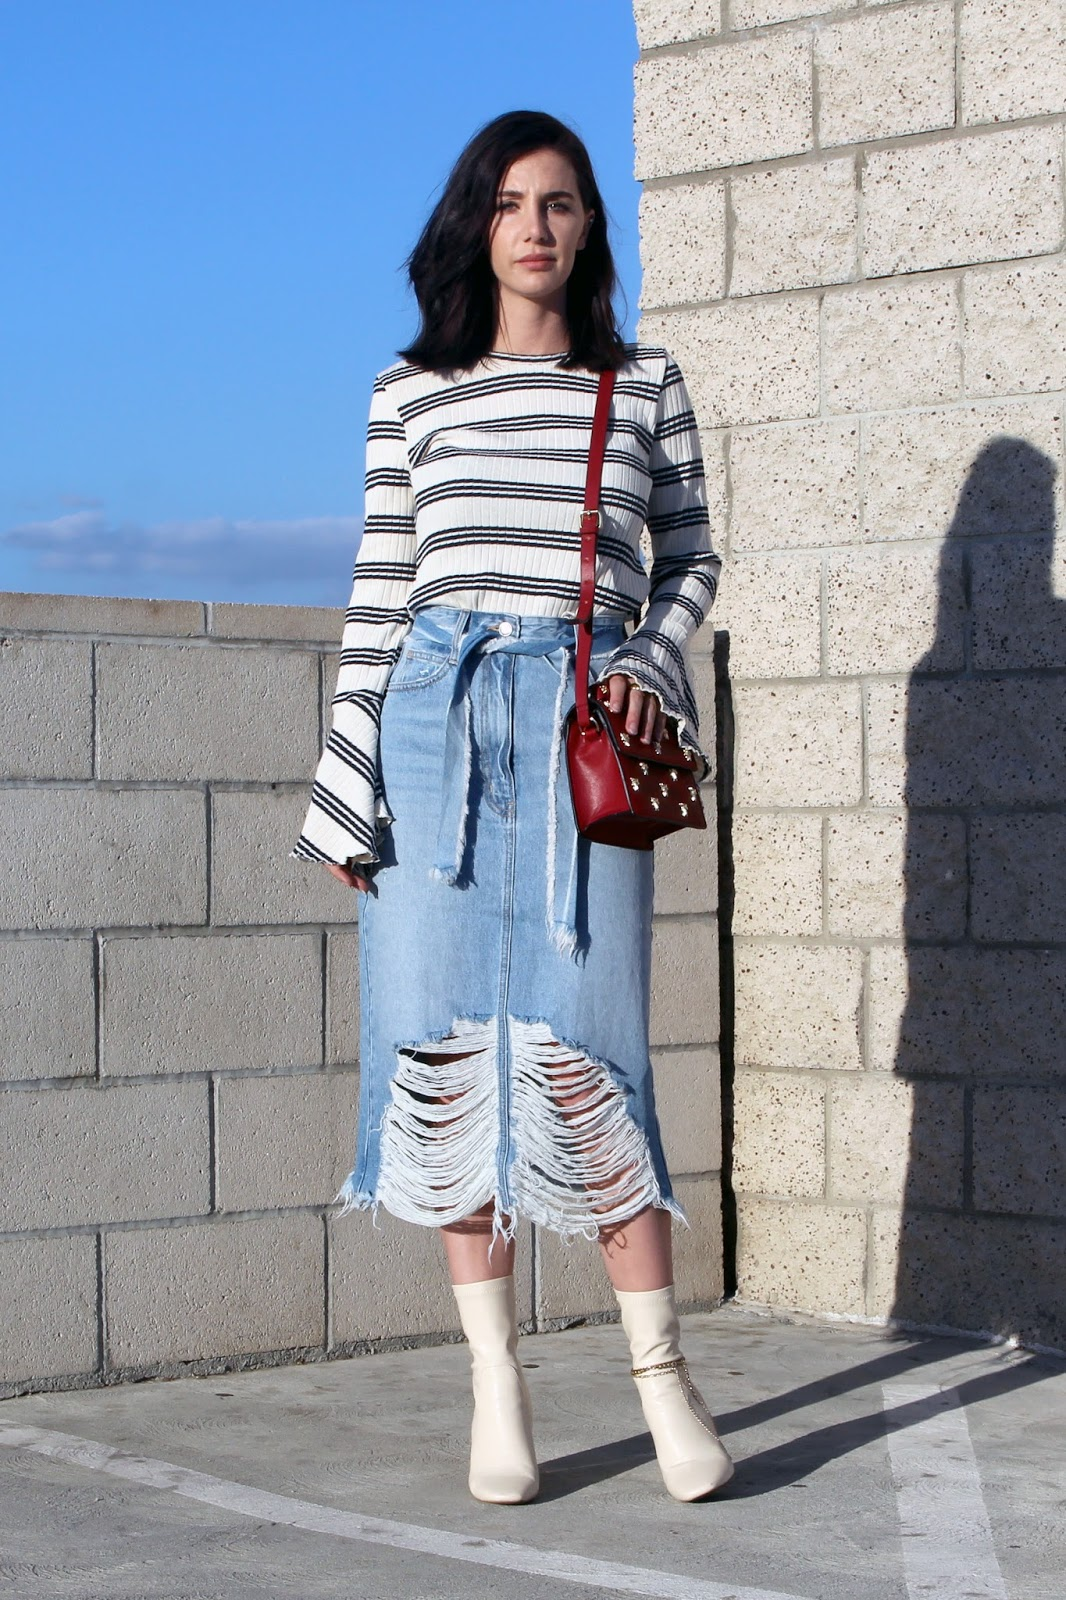 denim midi skirt, flared sleeve top, ankle boots, street style, fall 2016 trends